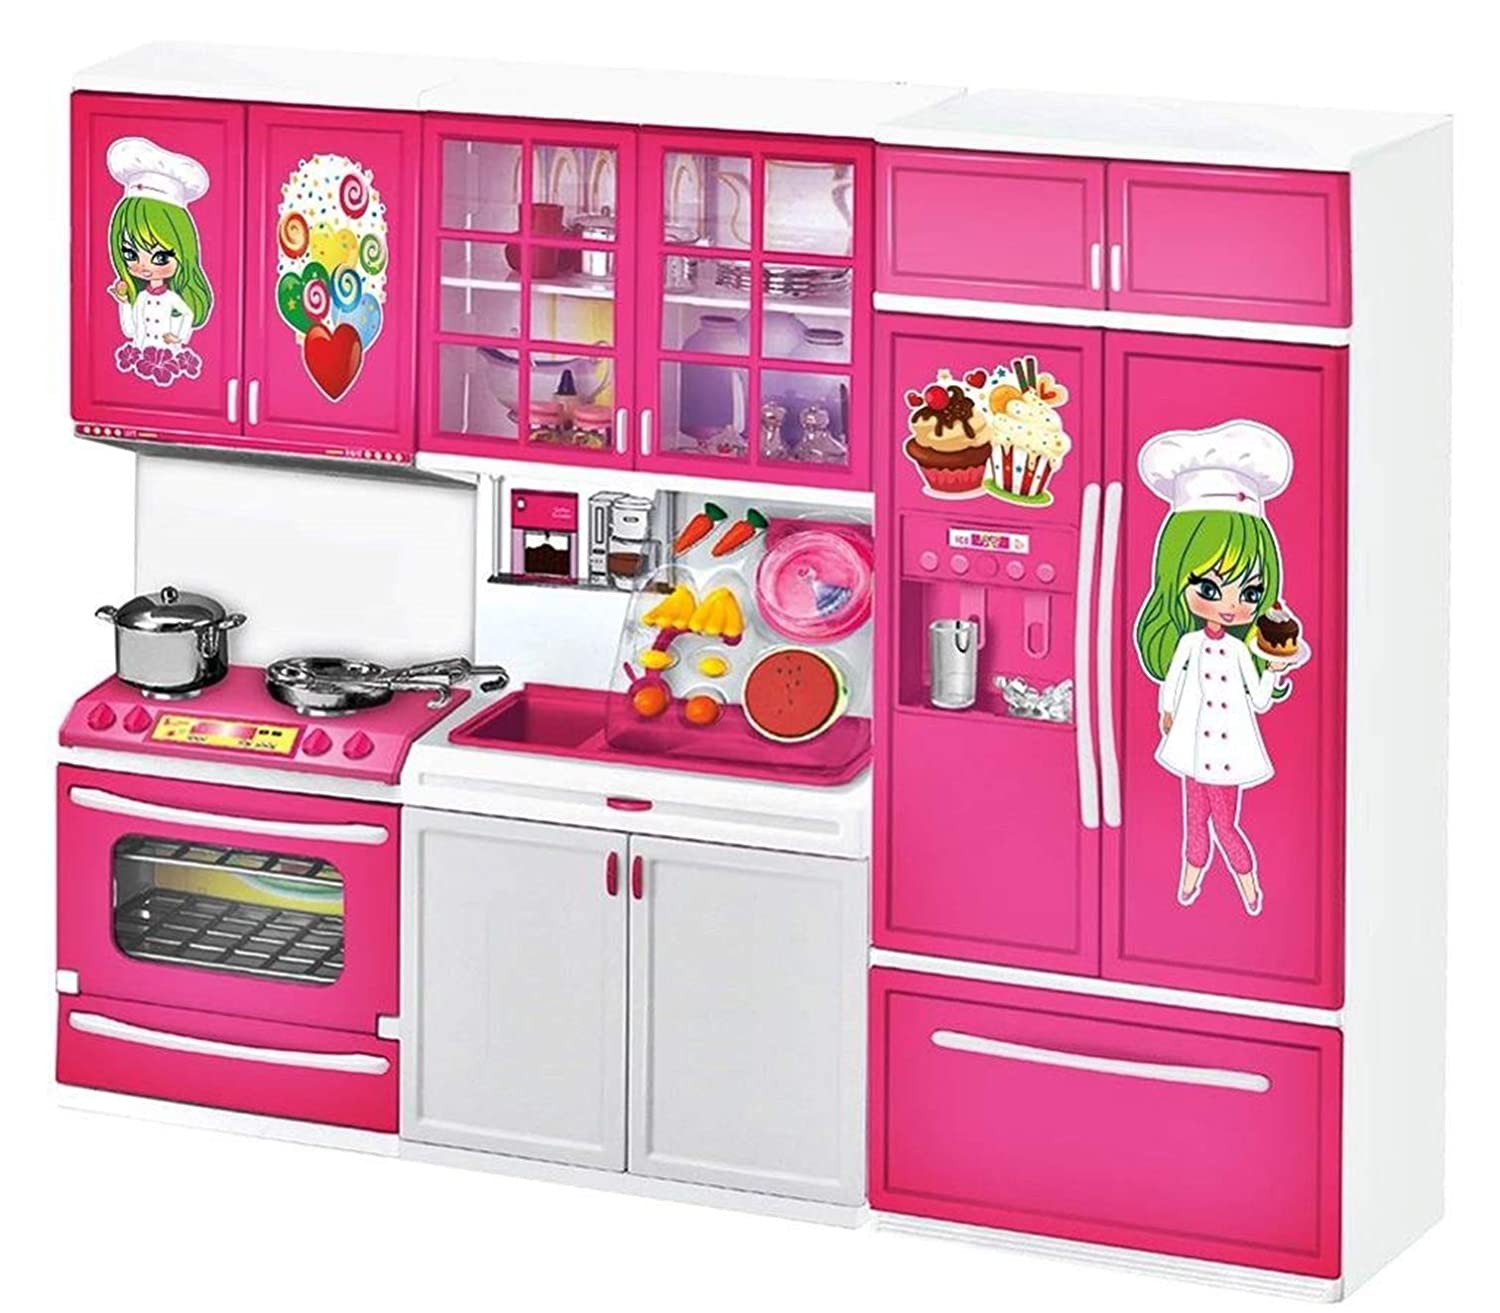 Buy Vivir Doll Kitchen Set For Kids Girls Pretend Play Toy For